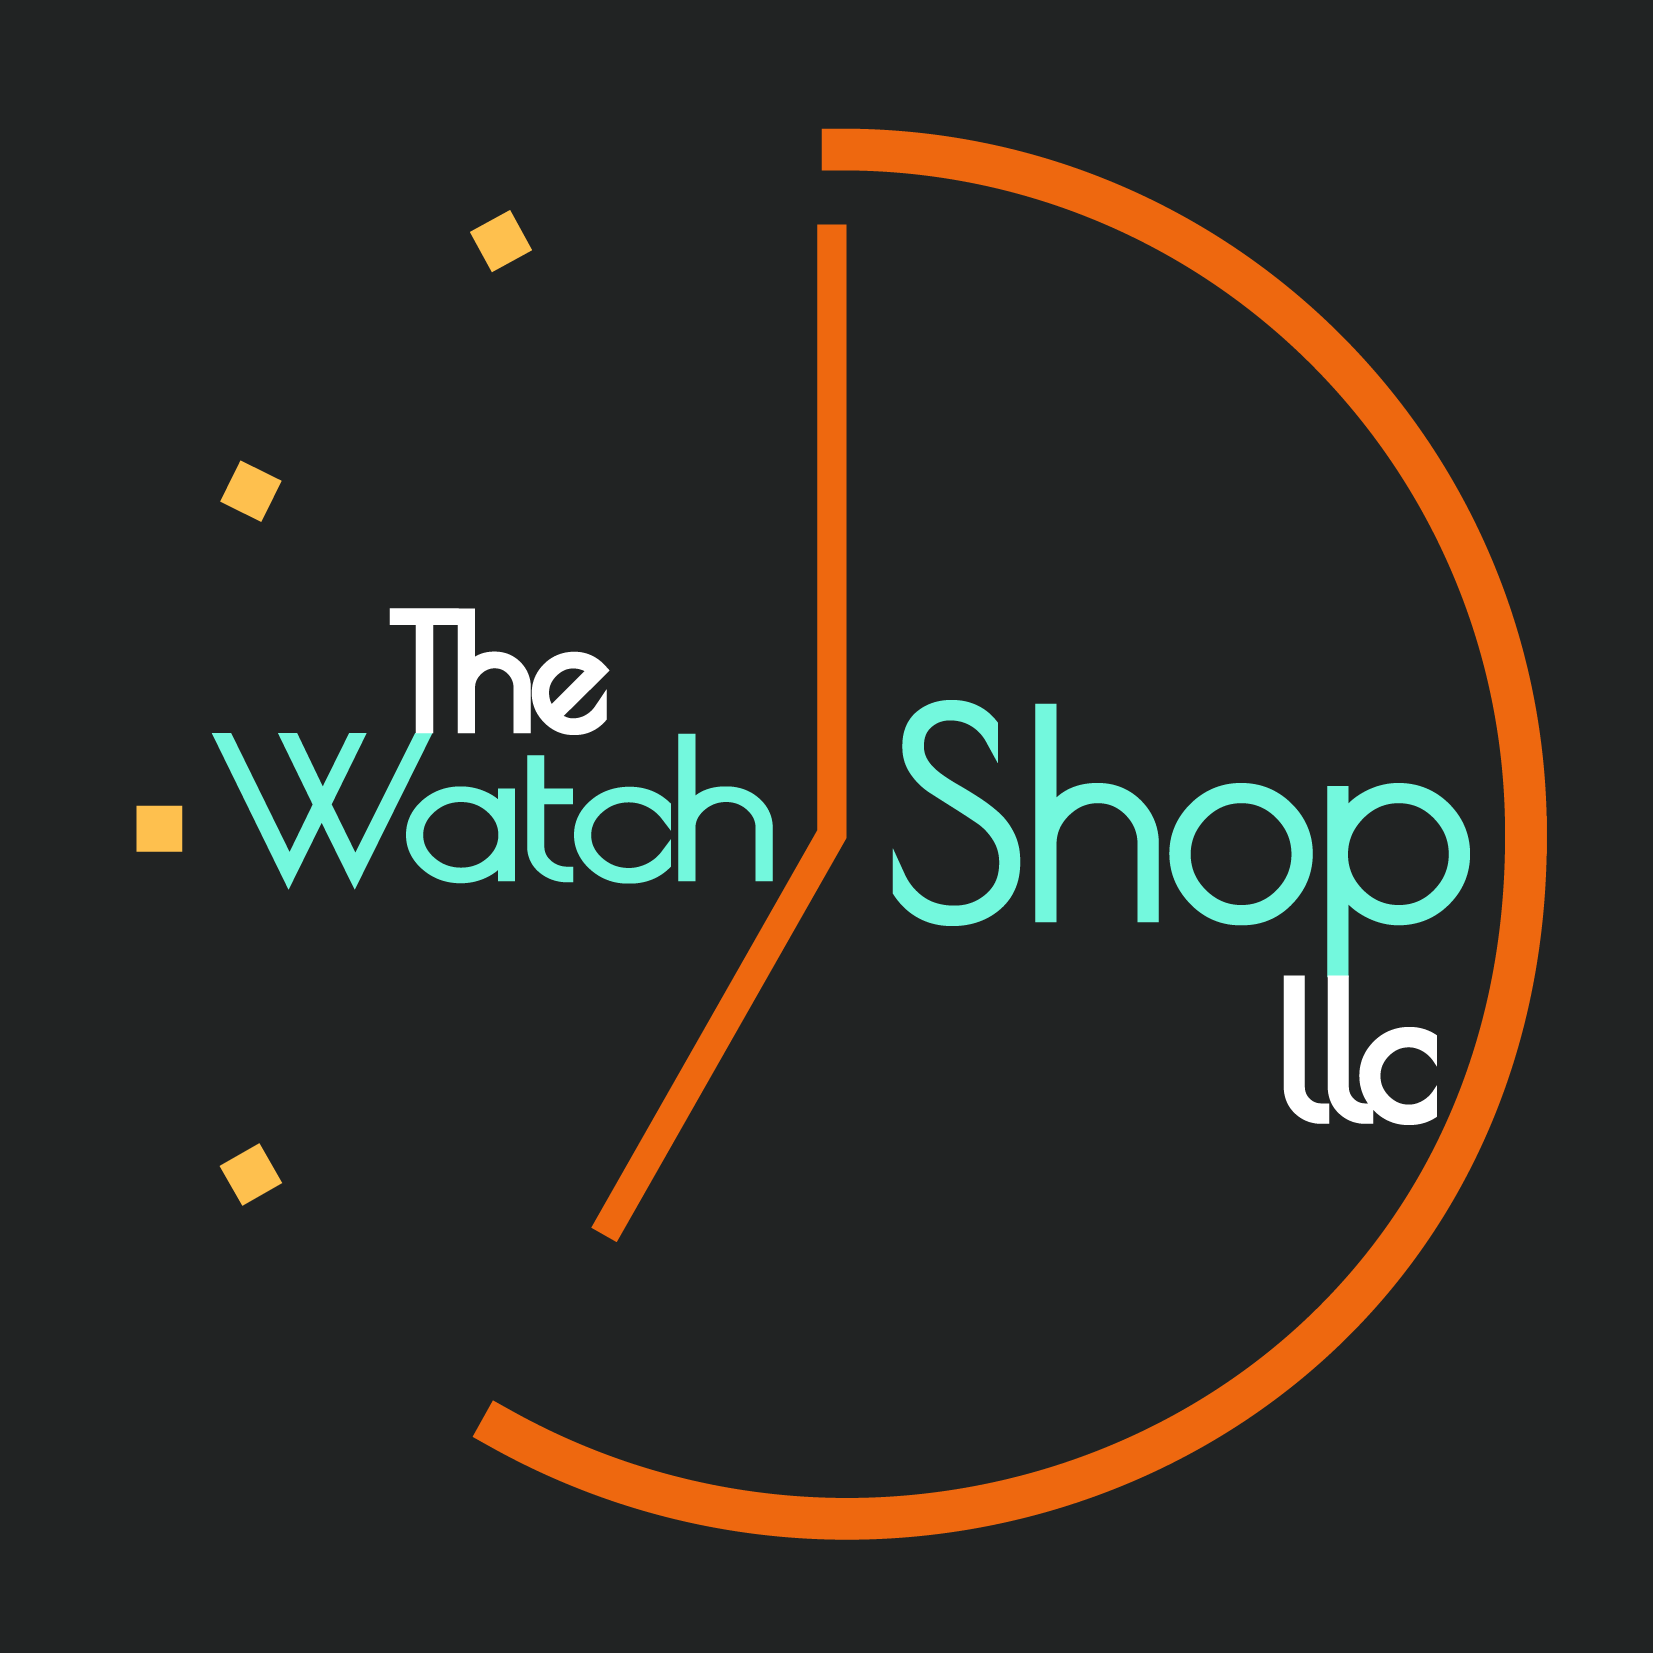 The Watch Shop LLC